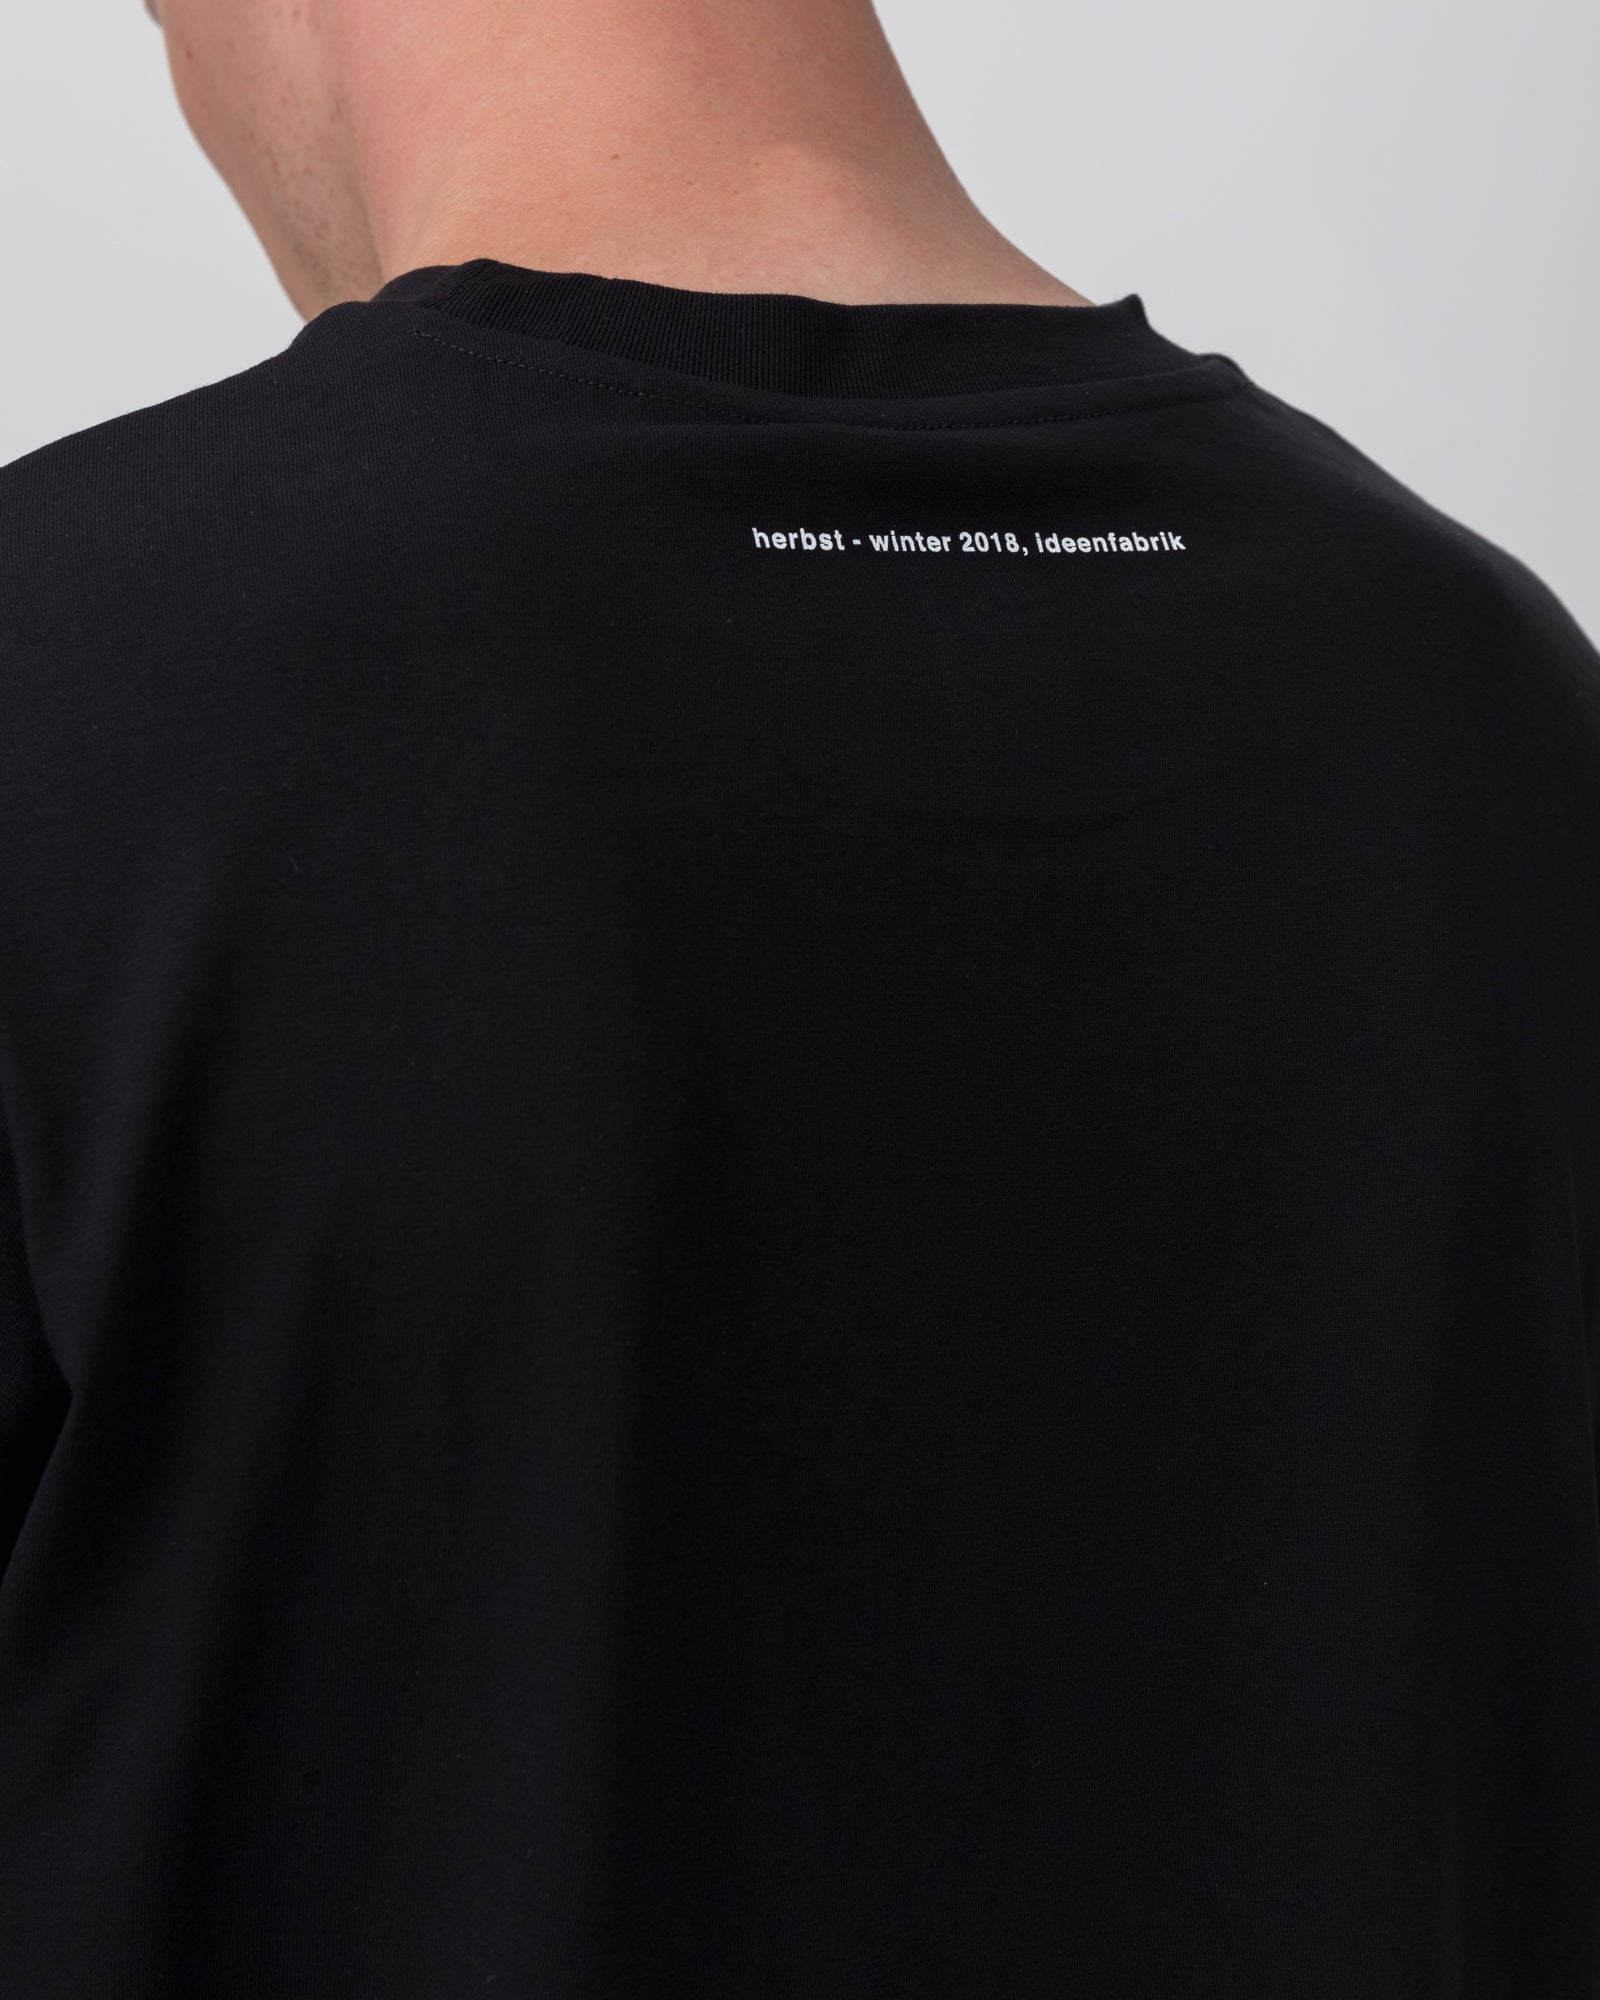 Chain Logo T-Shirt in Black